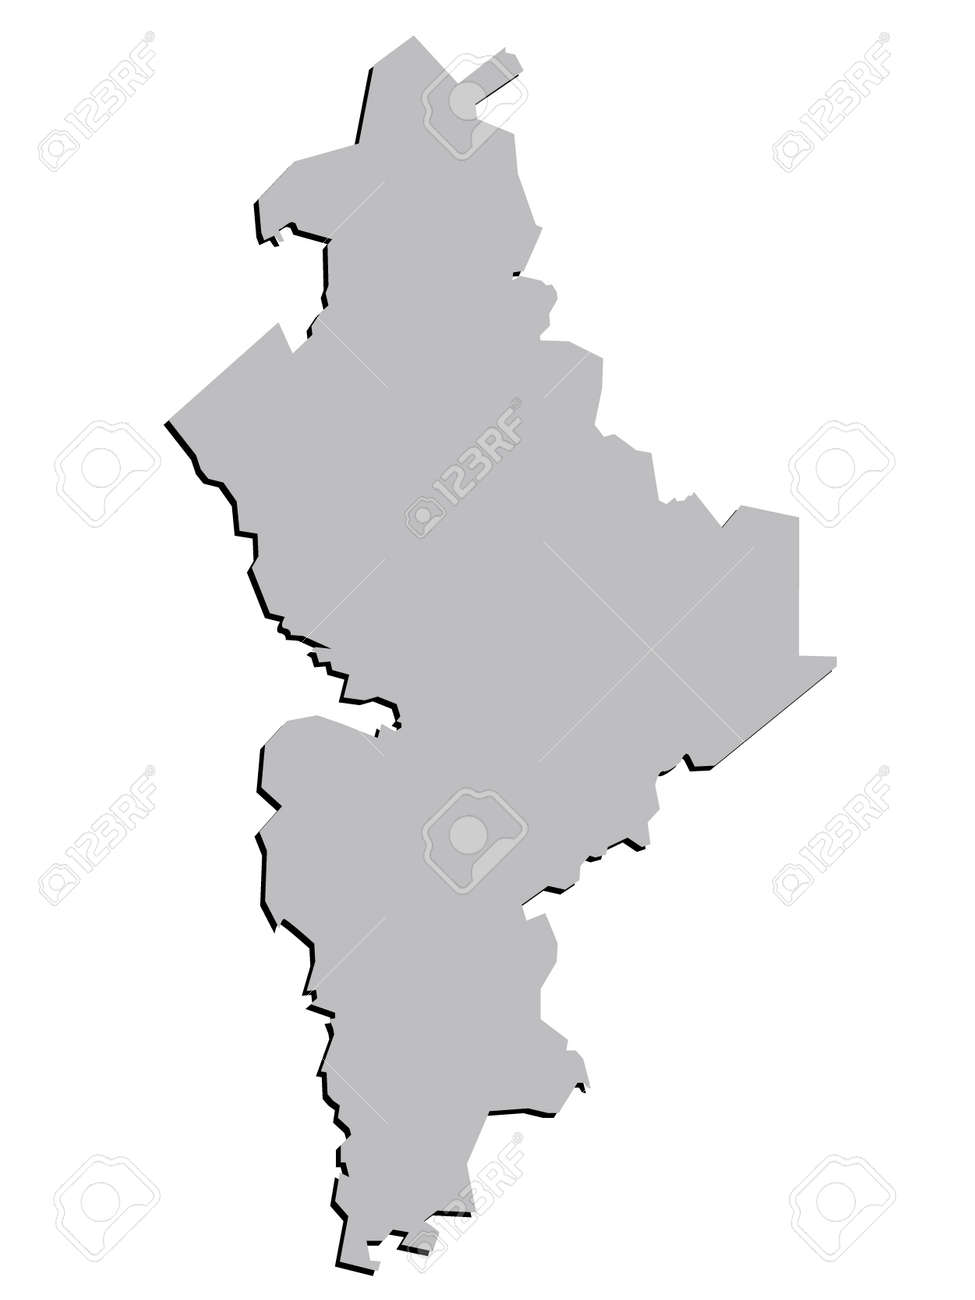 3d Nuevo Leon Mexico State Map Grey Vector Royalty Free Cliparts